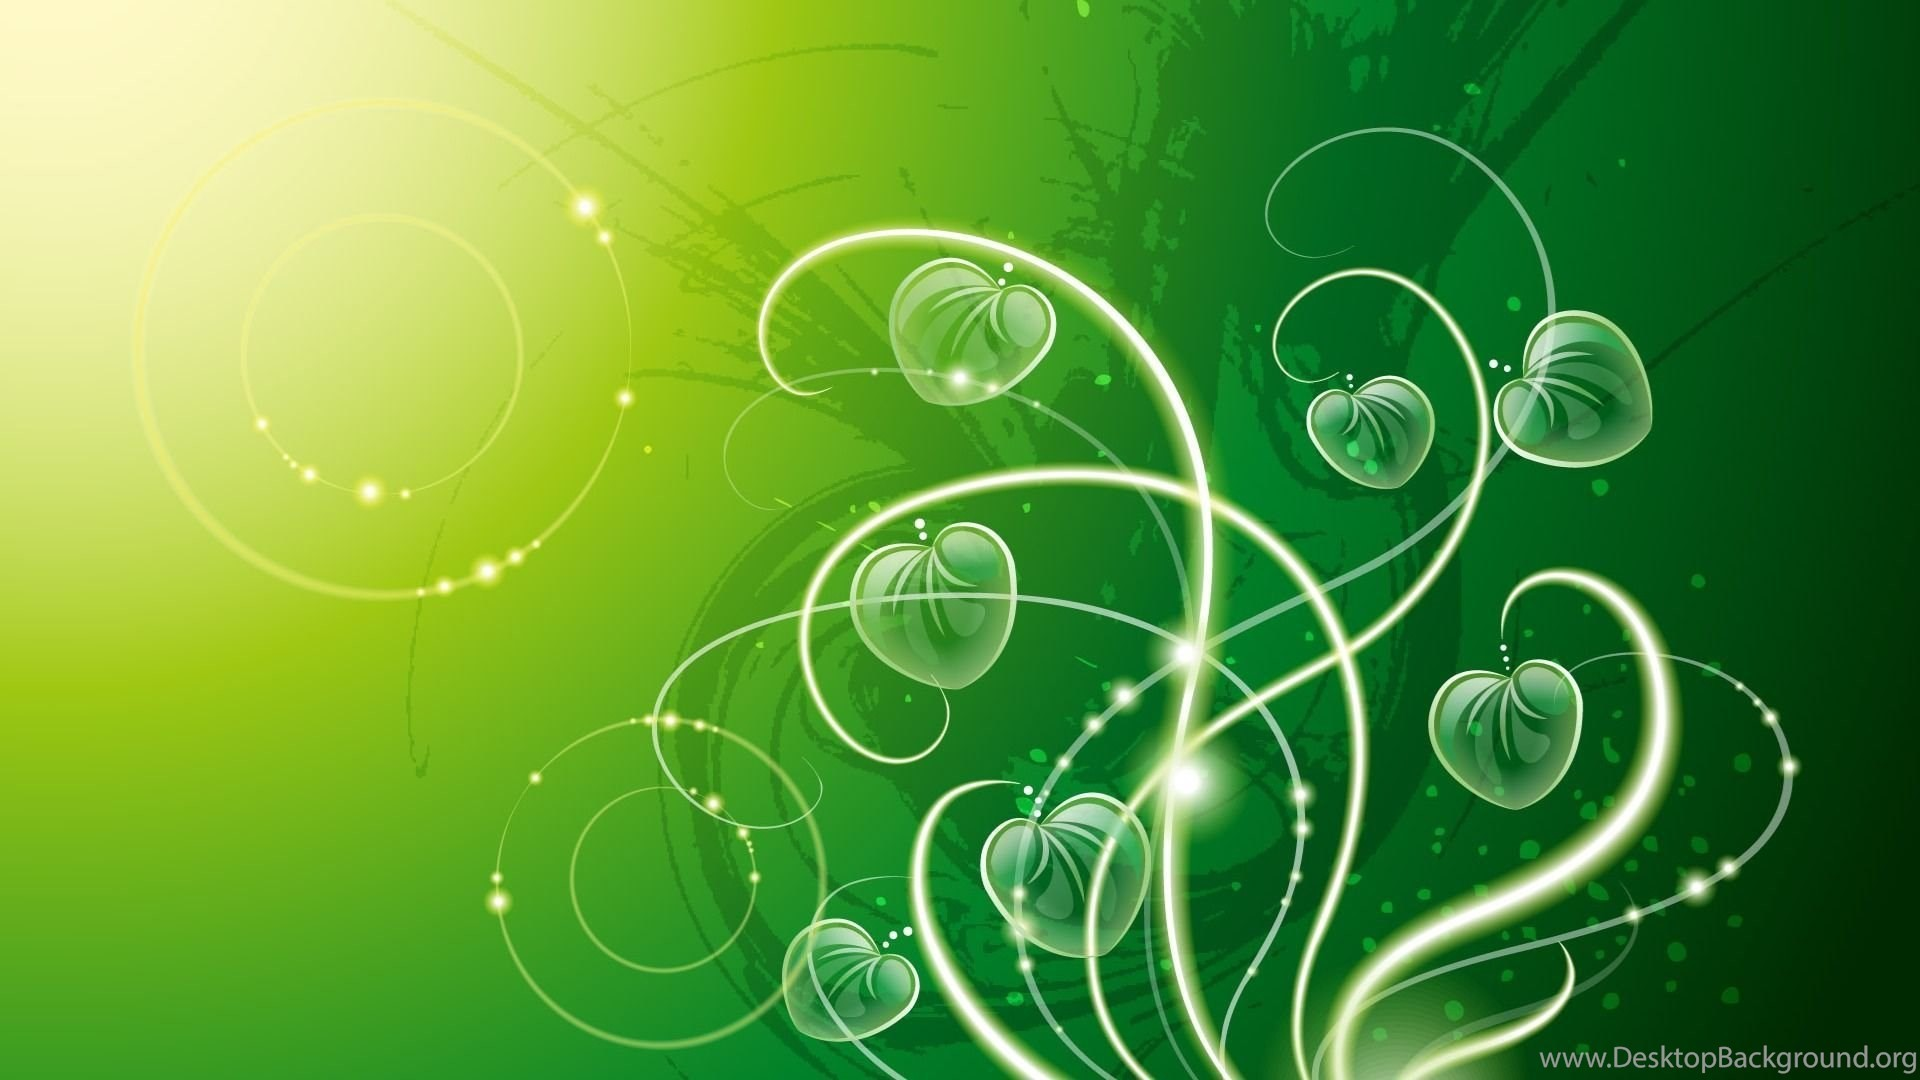 1920x1080 Green Backgrounds HD Wallpapers HD Wallpaper Backgrounds Of Your .